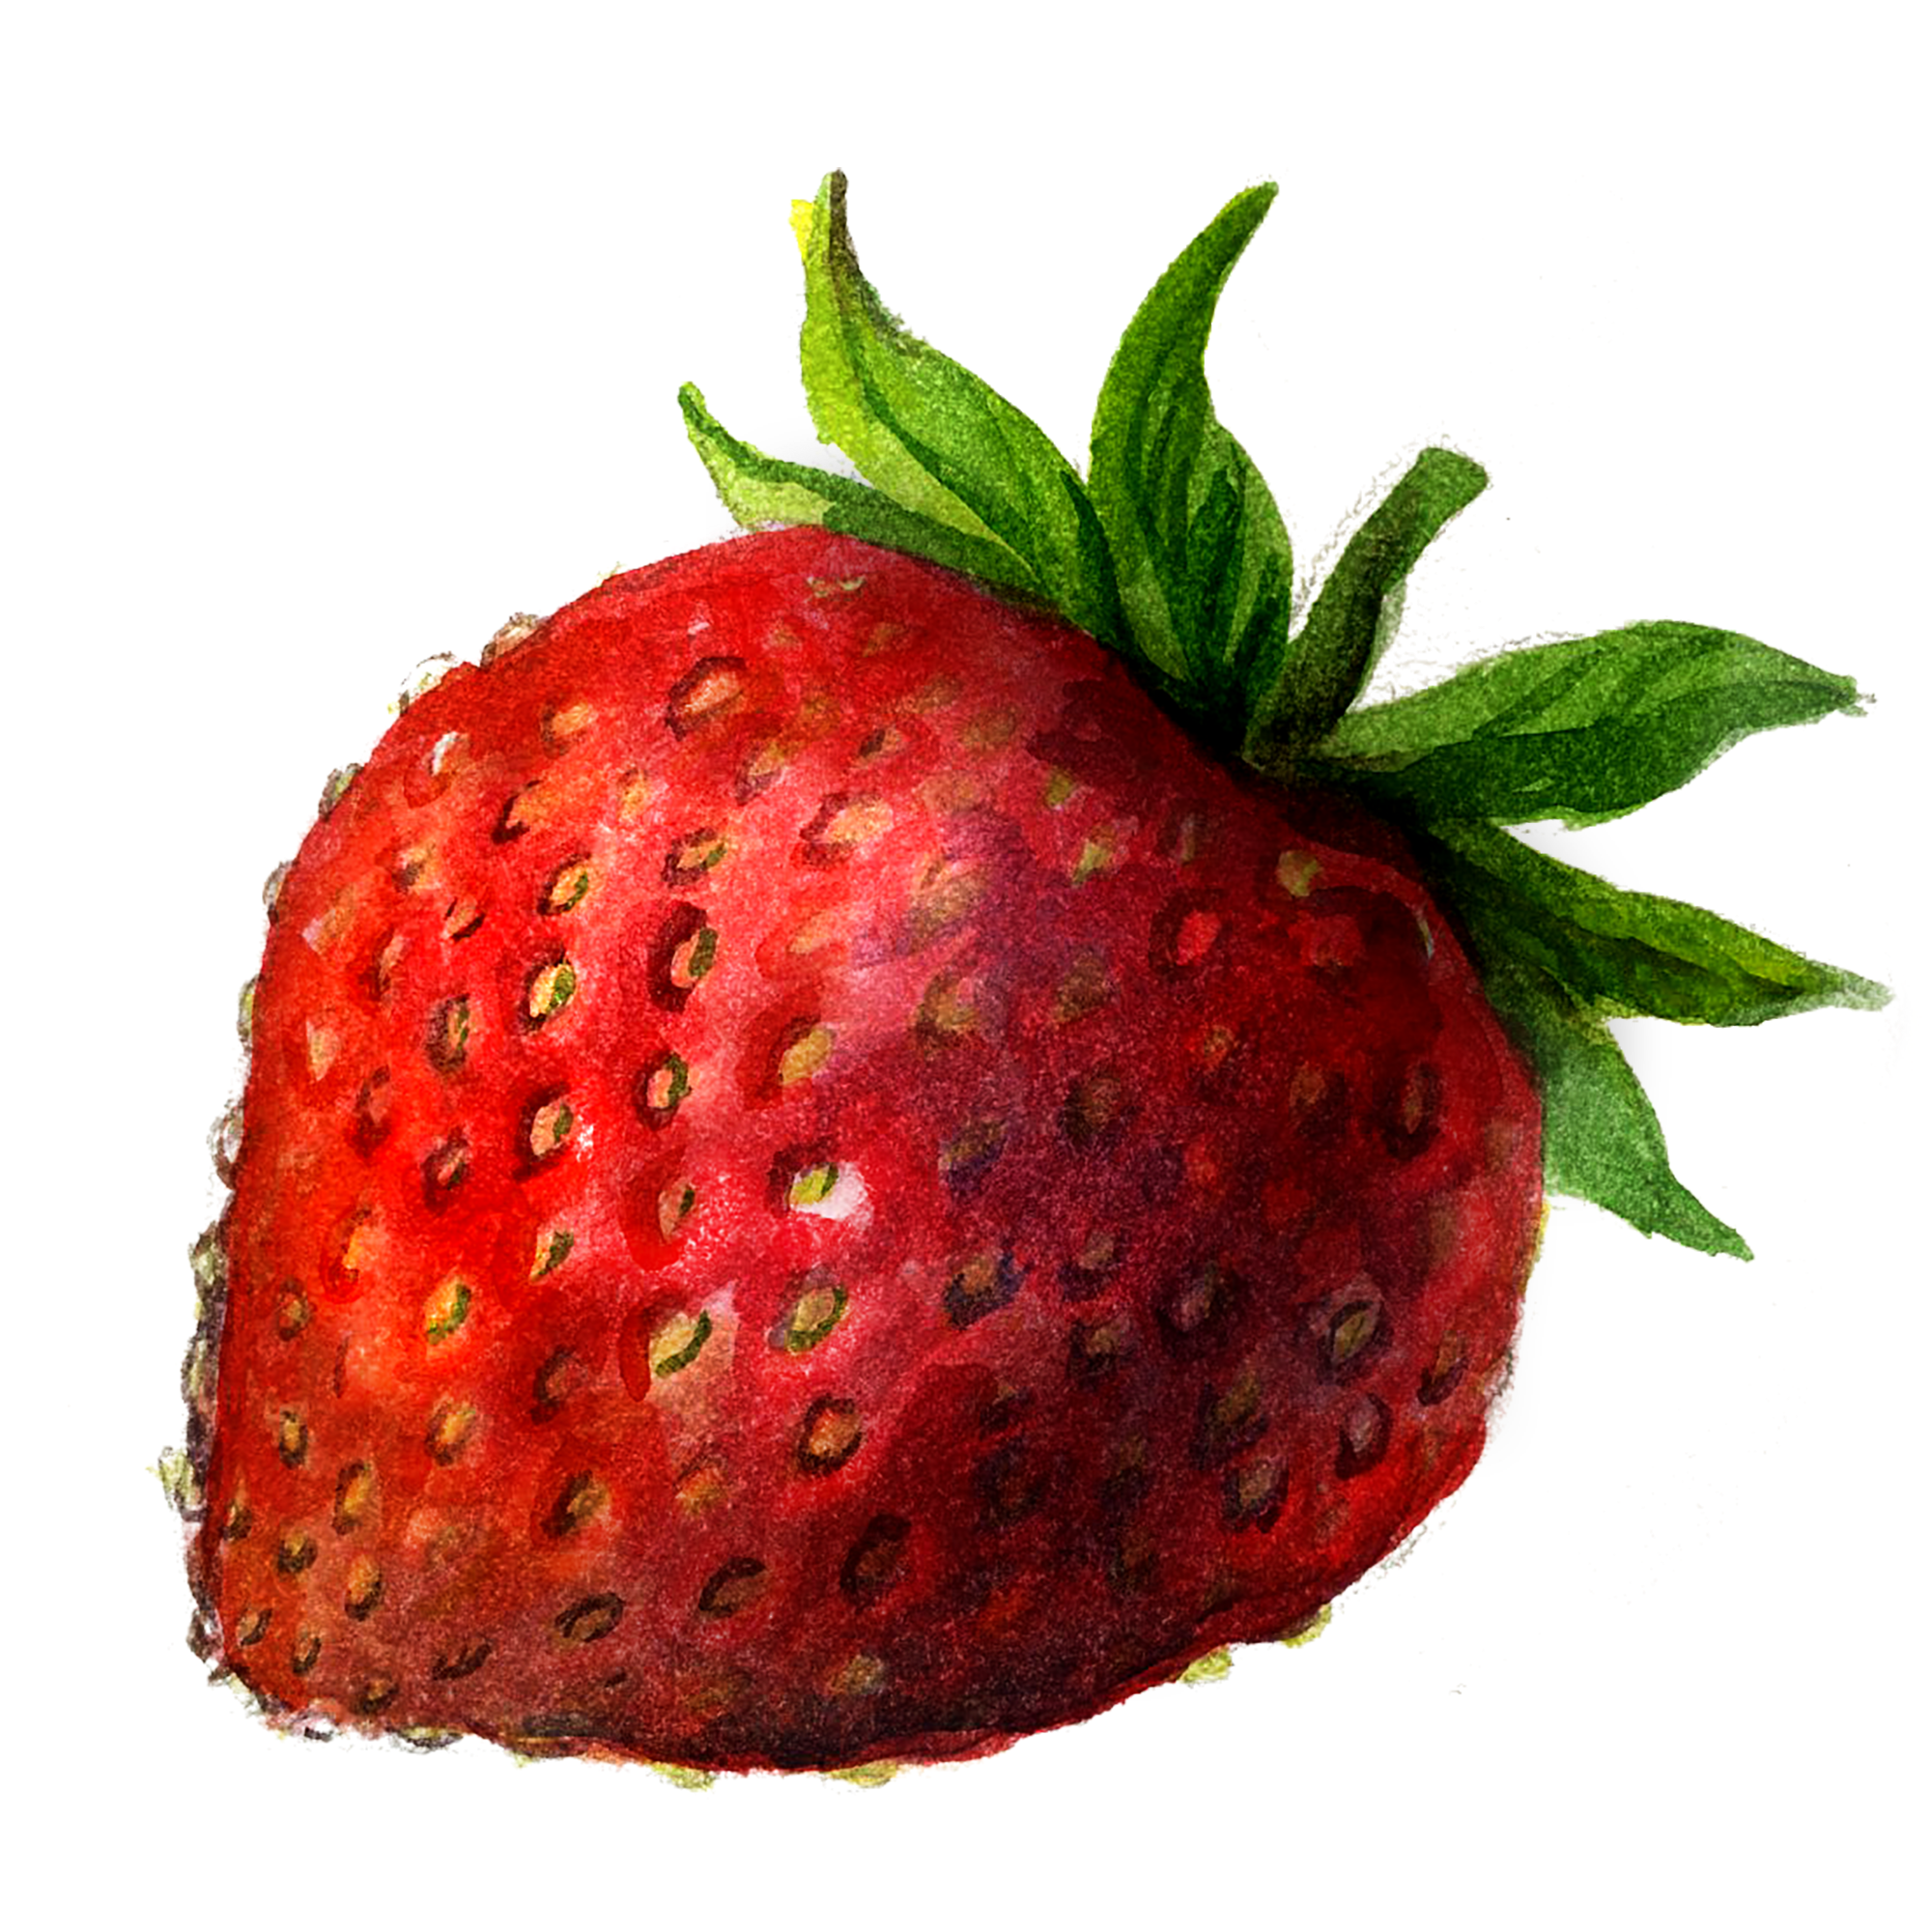 Stroke drawing berry. Collection of free strawberries